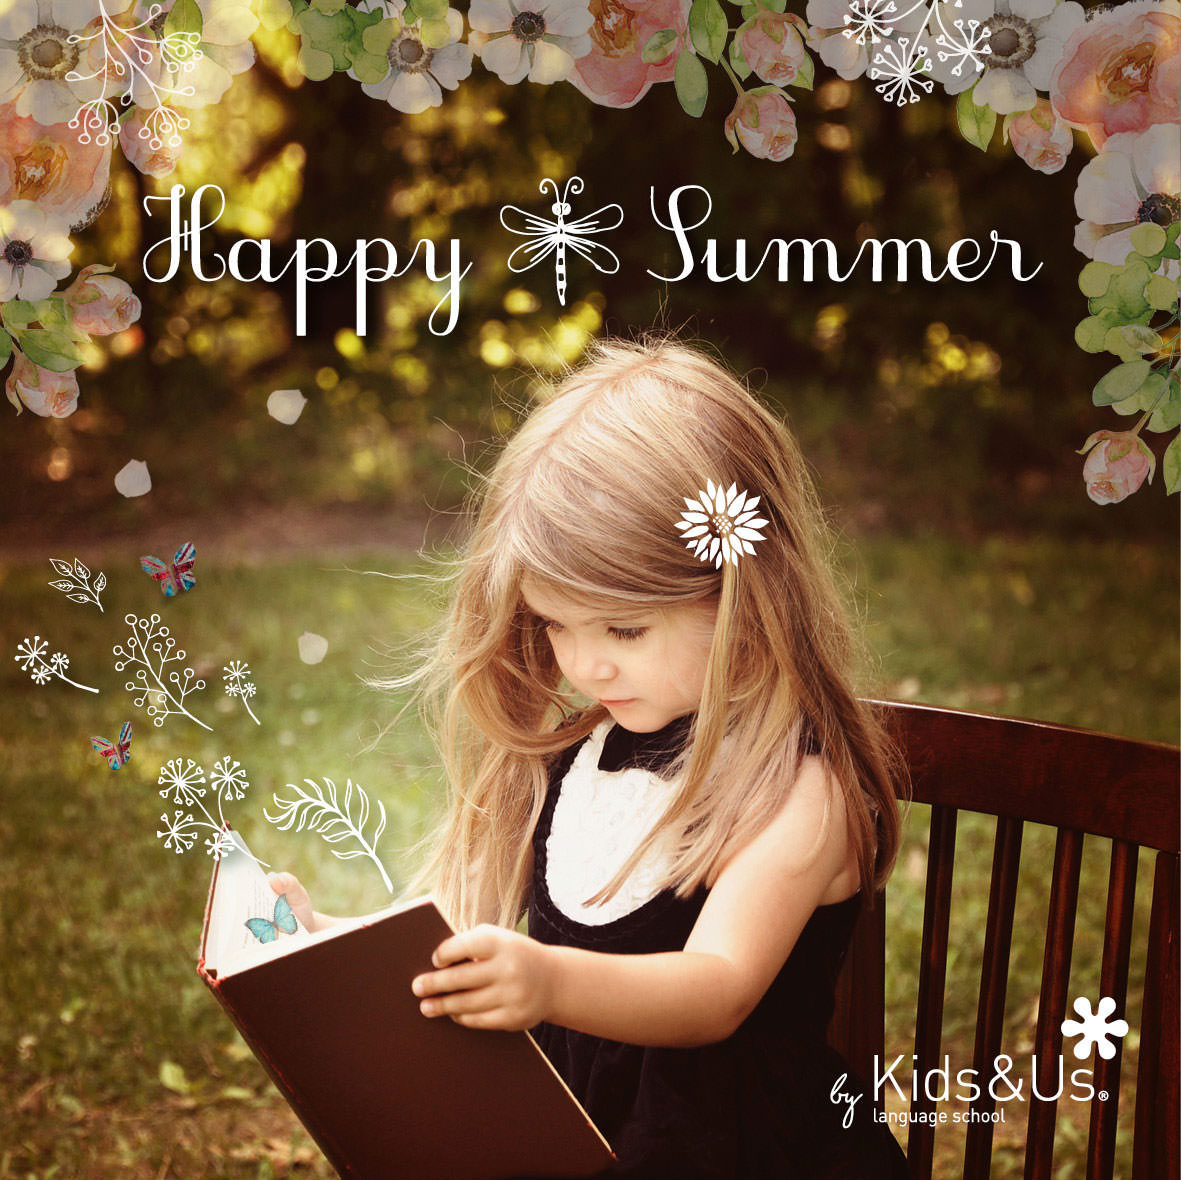 After giving your all throughout the school year, we wish you a Happy Summer!